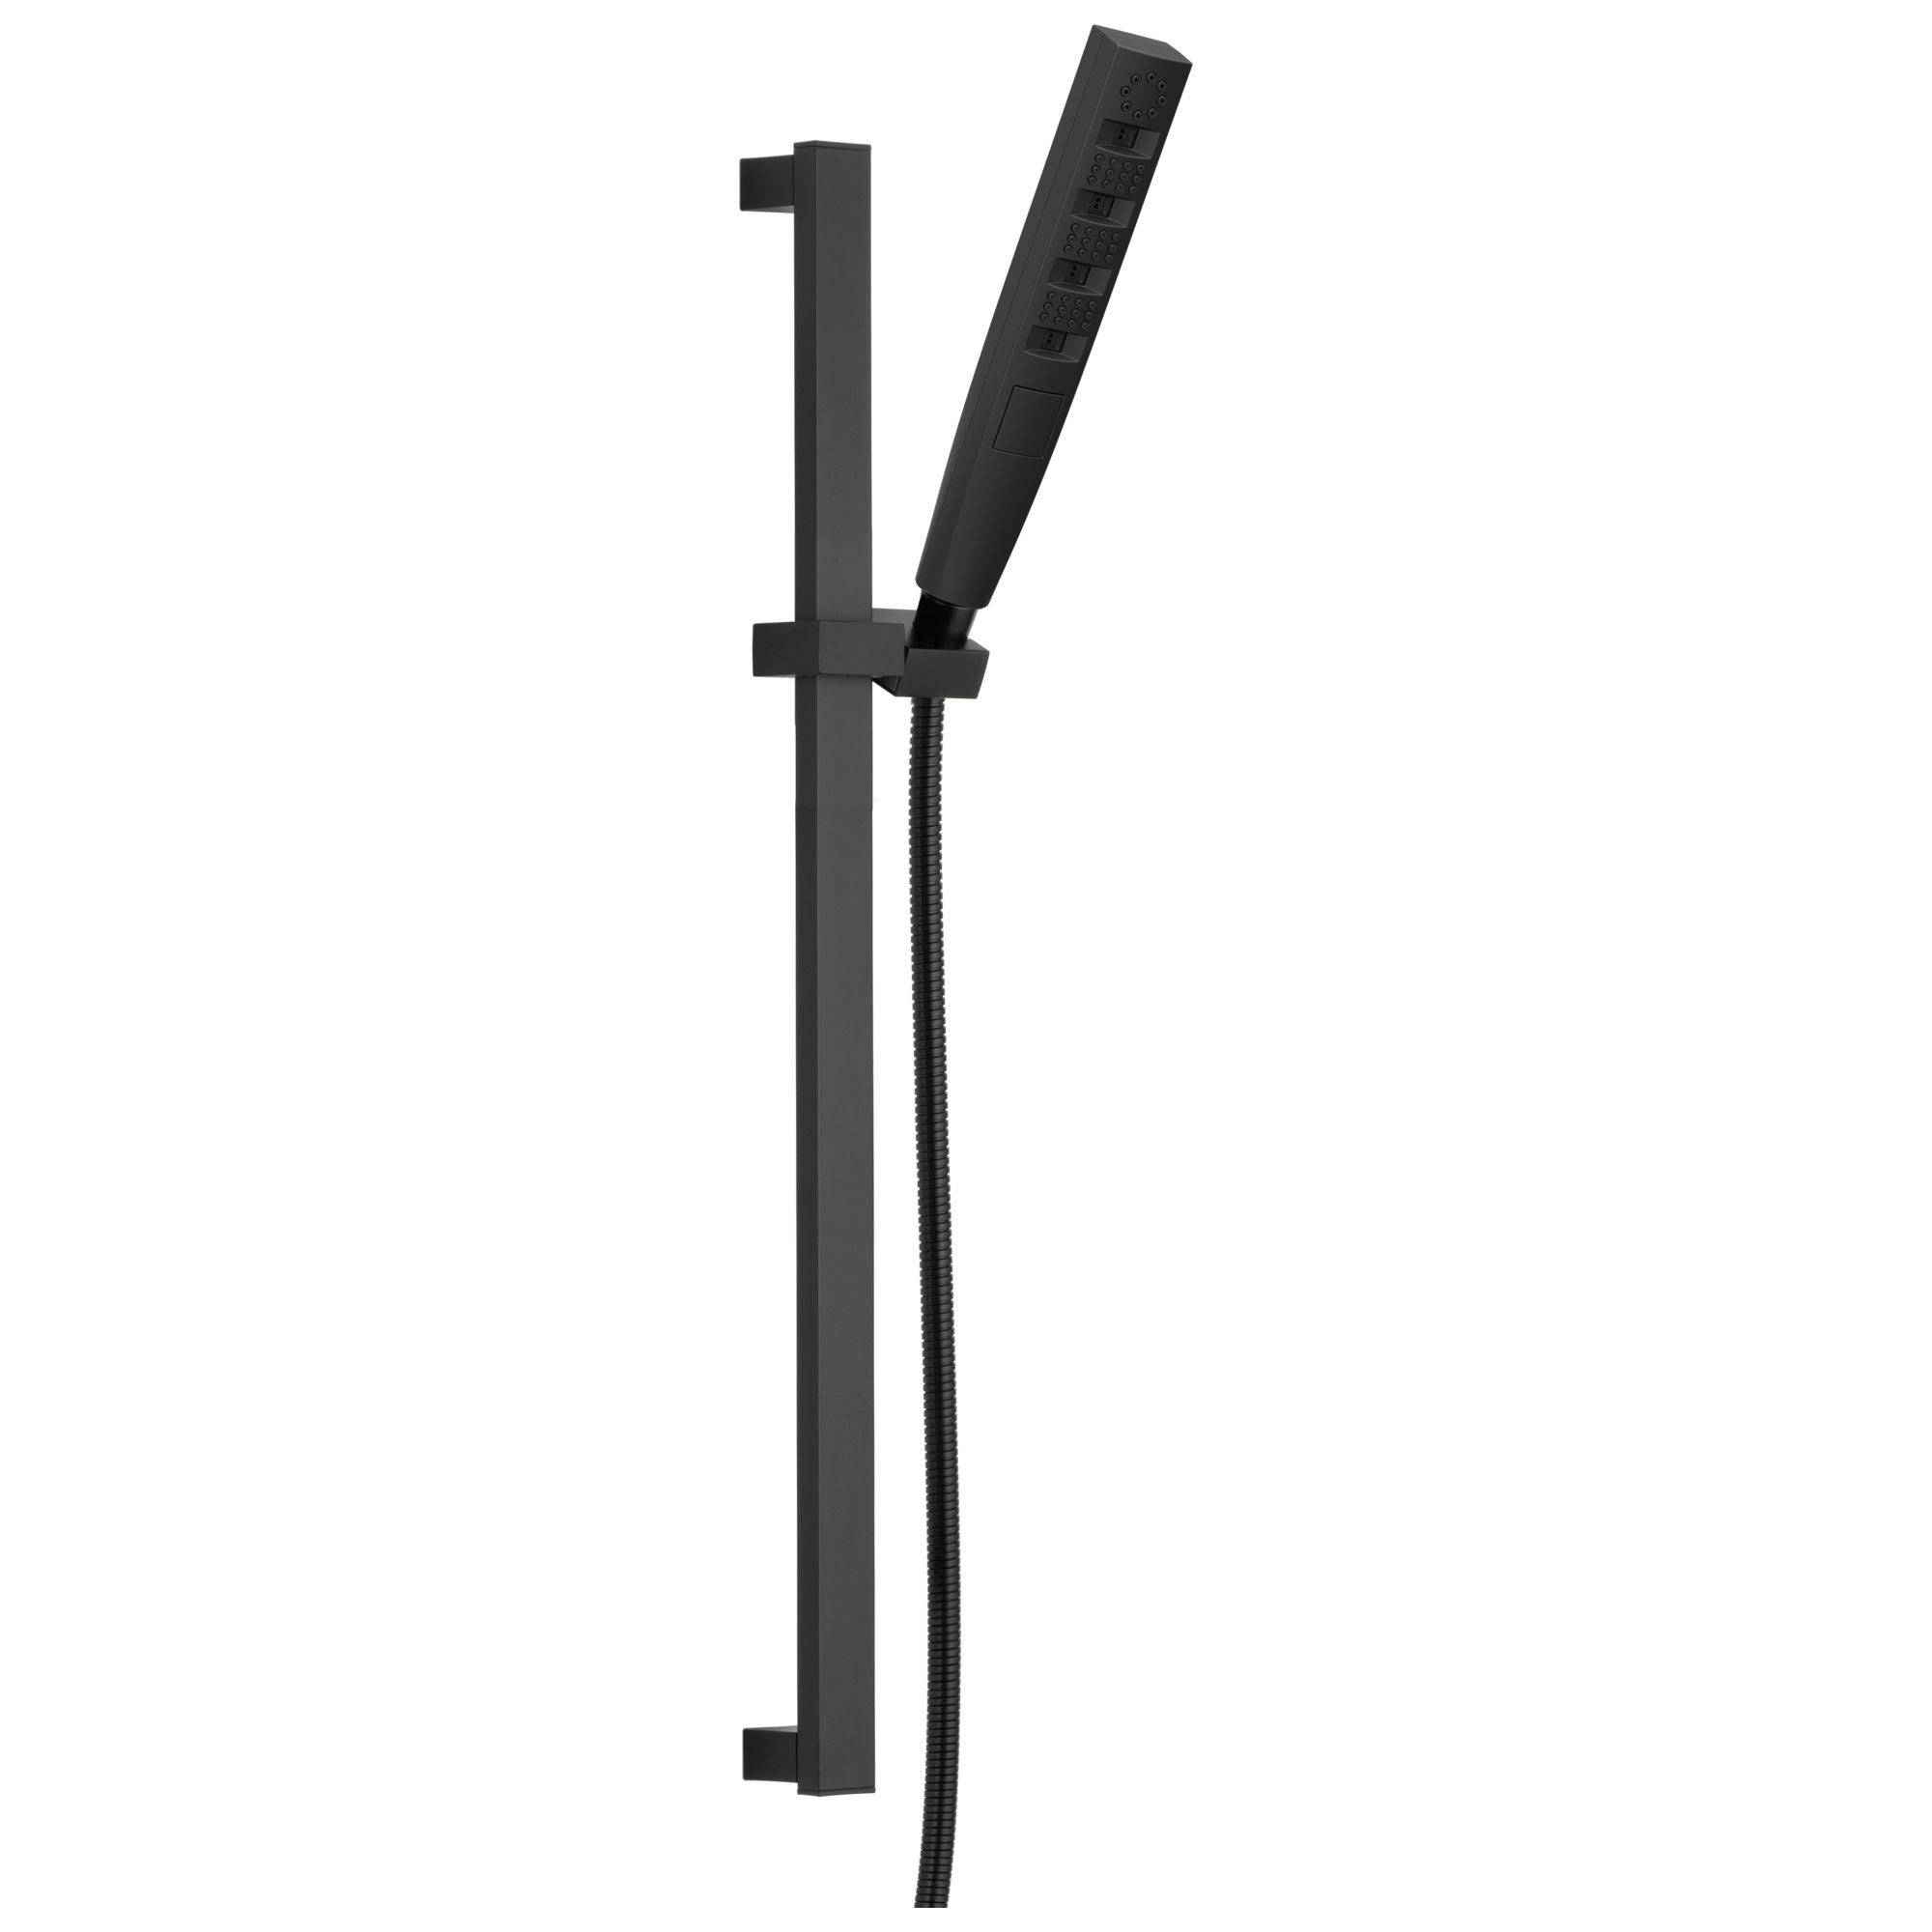 Delta Matte Black Finish H2Okinetic 4-Setting Modern Slide Bar Hand Shower with Hose D51140BL